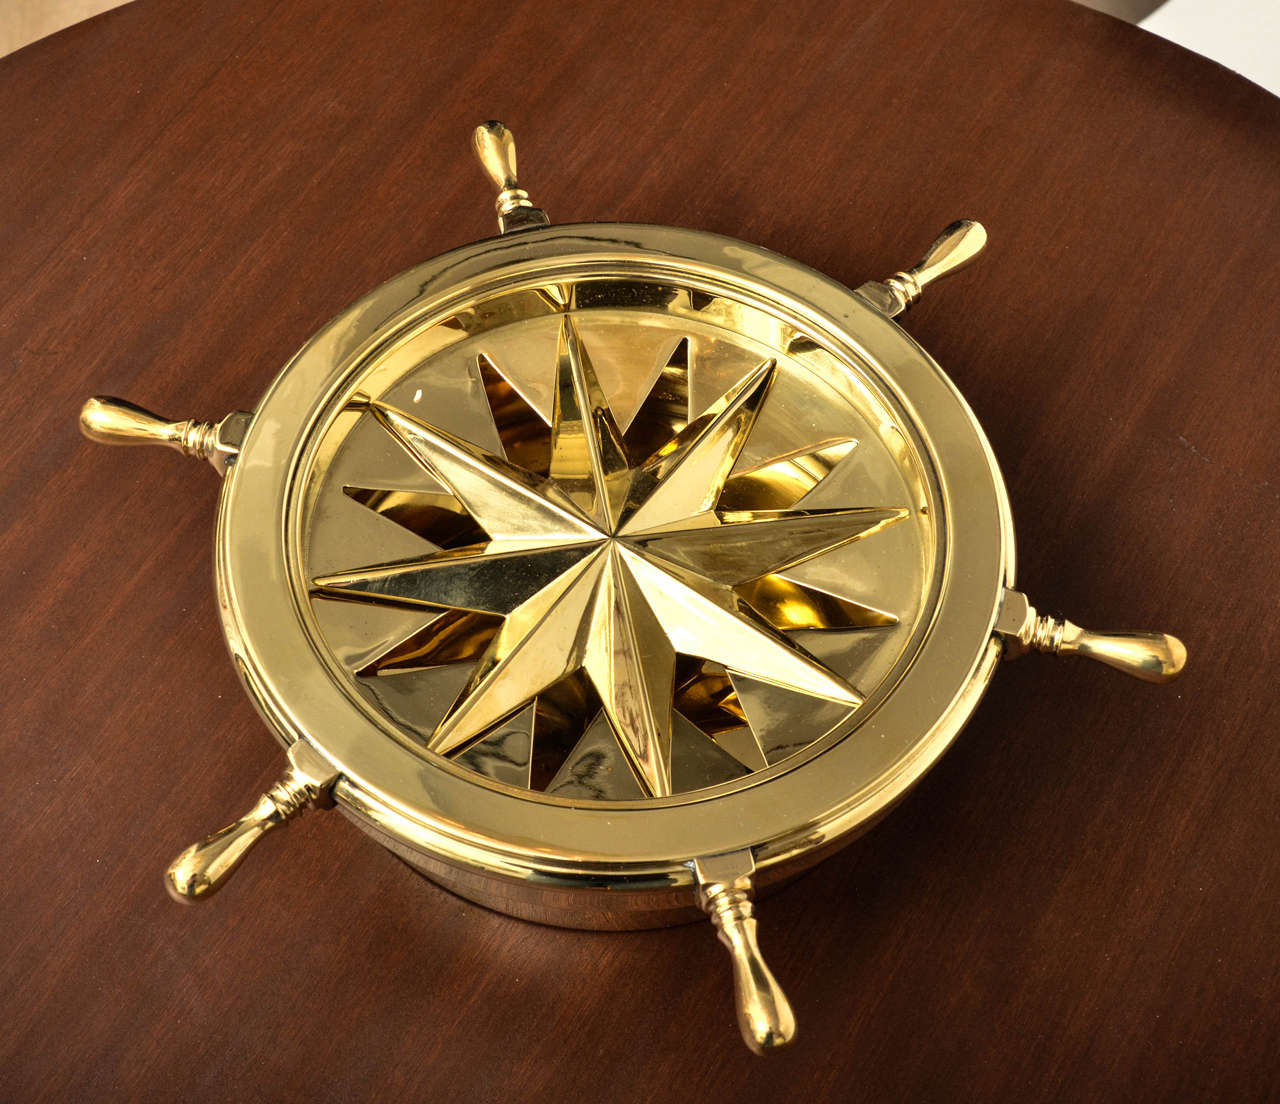 revolving chair without wheels 2 dining table nautical themed brass ash tray with rotating ship wheel